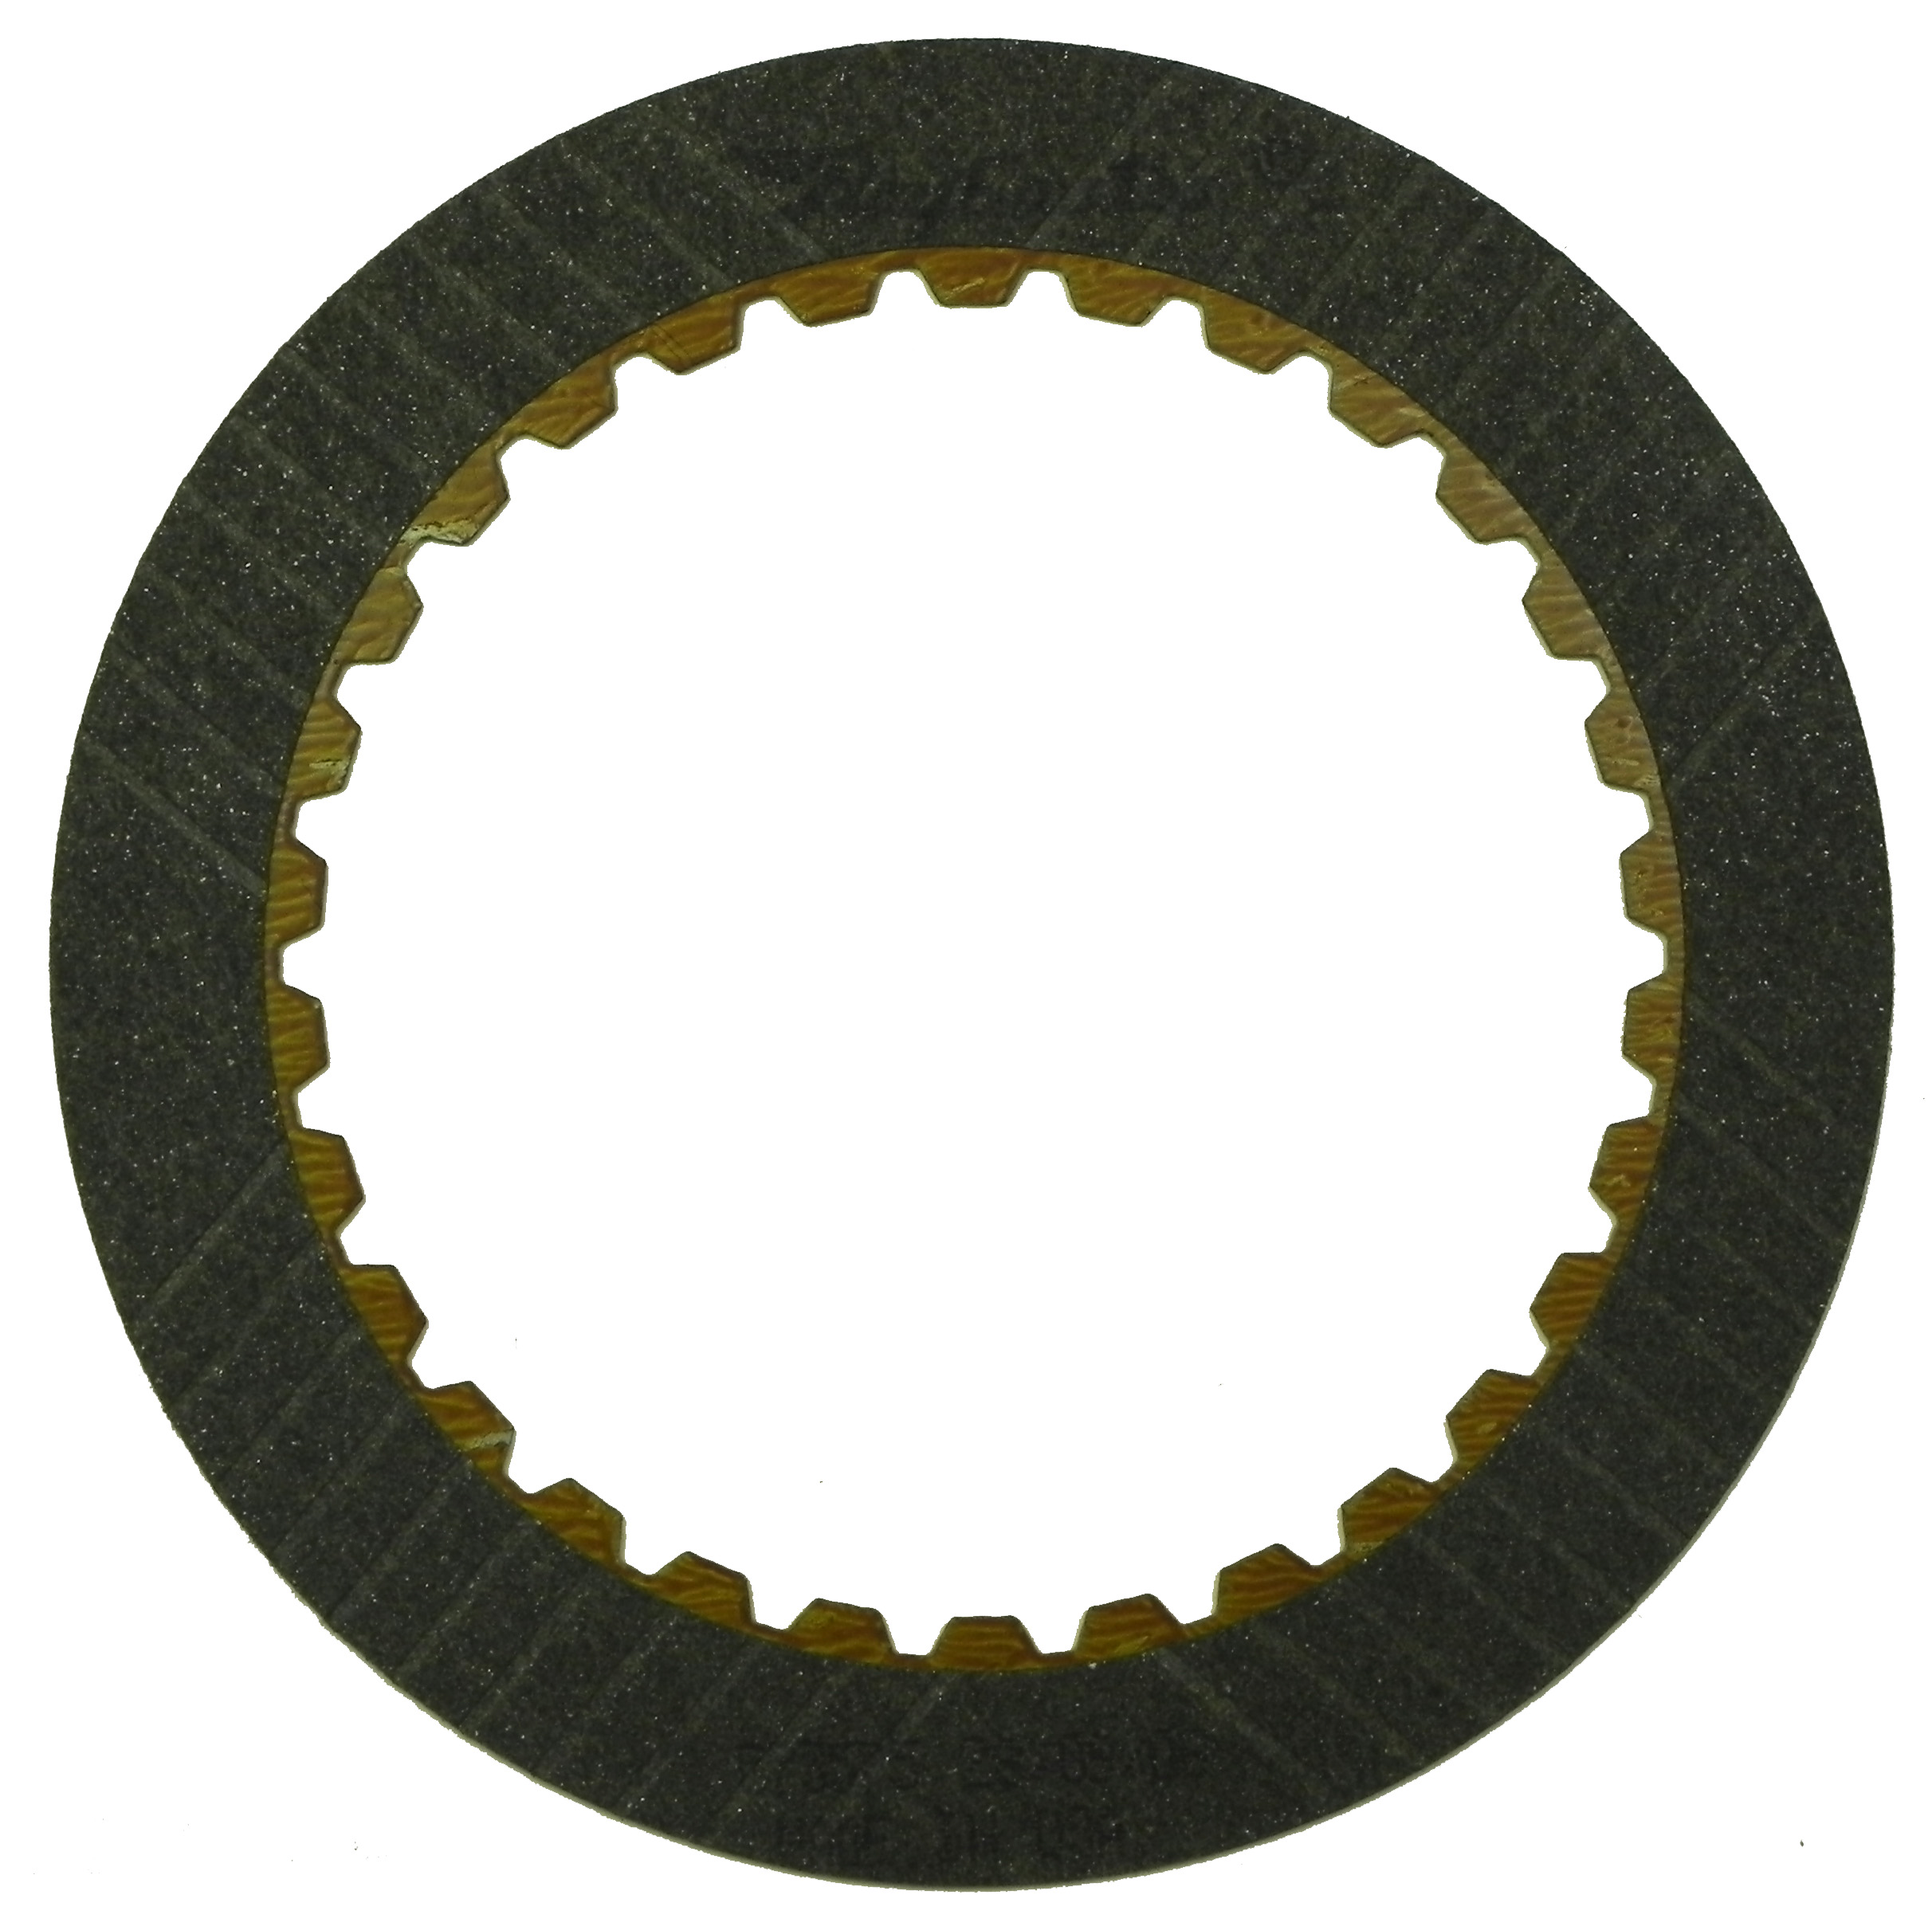 R573575 | 2008-ON Friction Clutch Plate High Energy Low, Reverse Brake High Energy